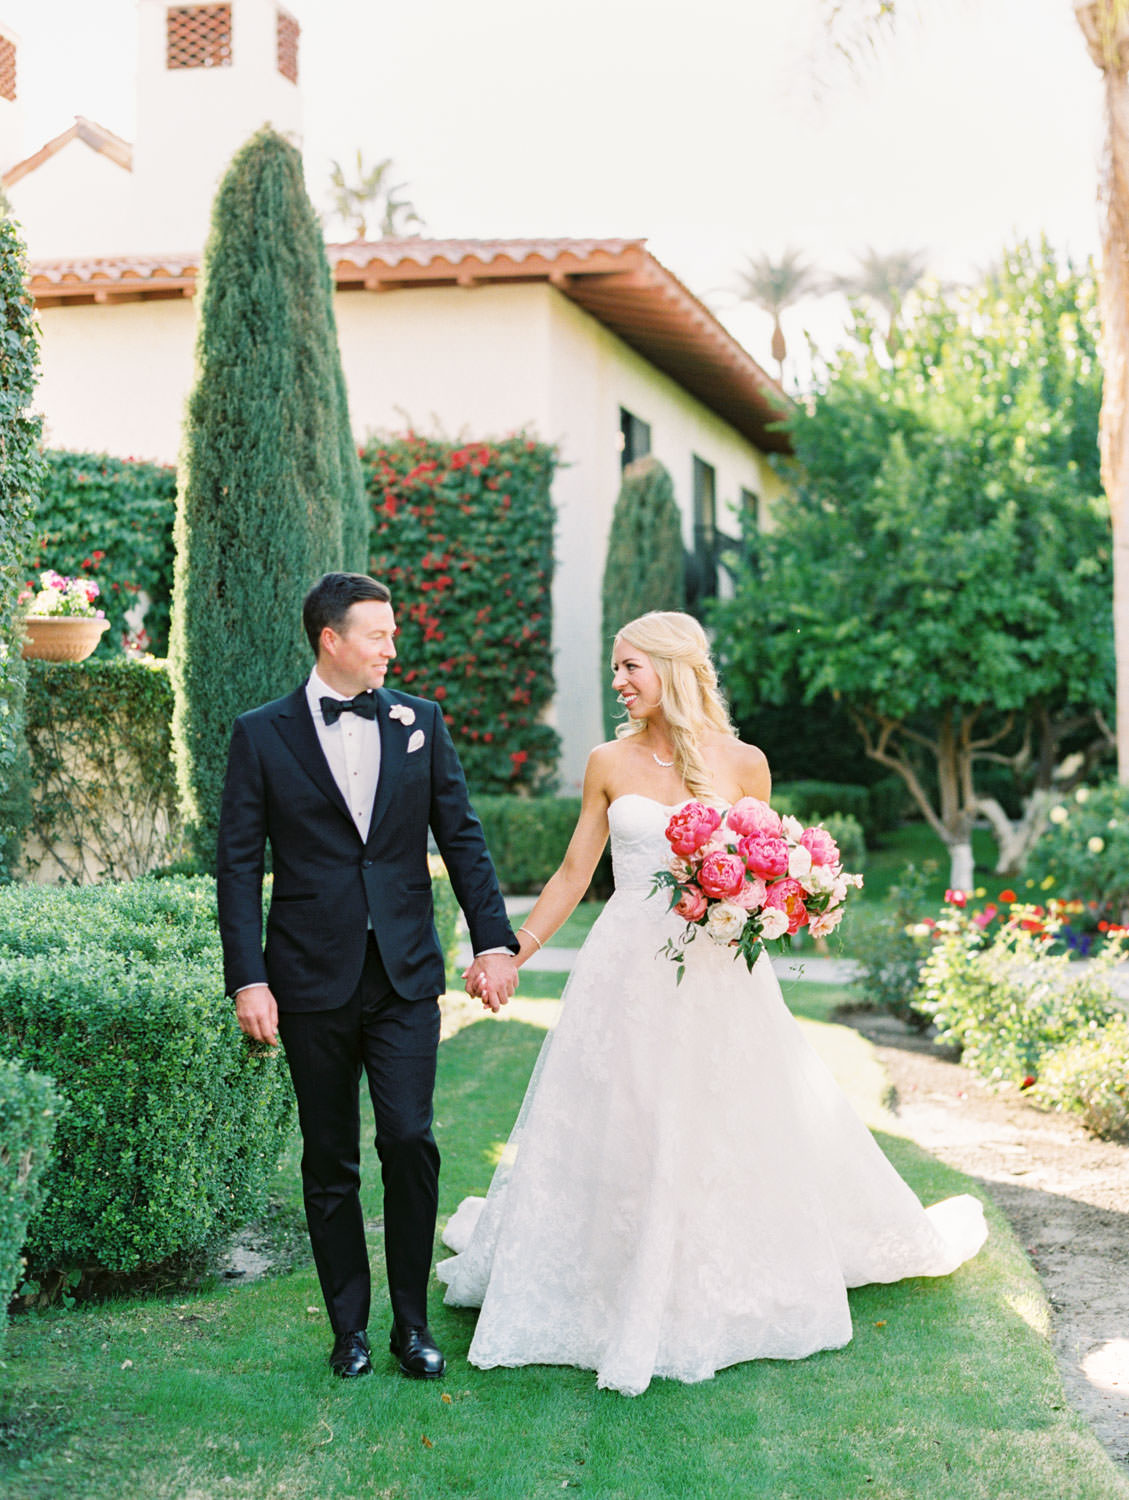 Groom in black tux walking with the bride wearing a lace Watters sweetheart gown with large bridal bouquet of pink tones with peonies and roses. Miramonte Resort wedding. Film photography by Cavin Elizabeth.